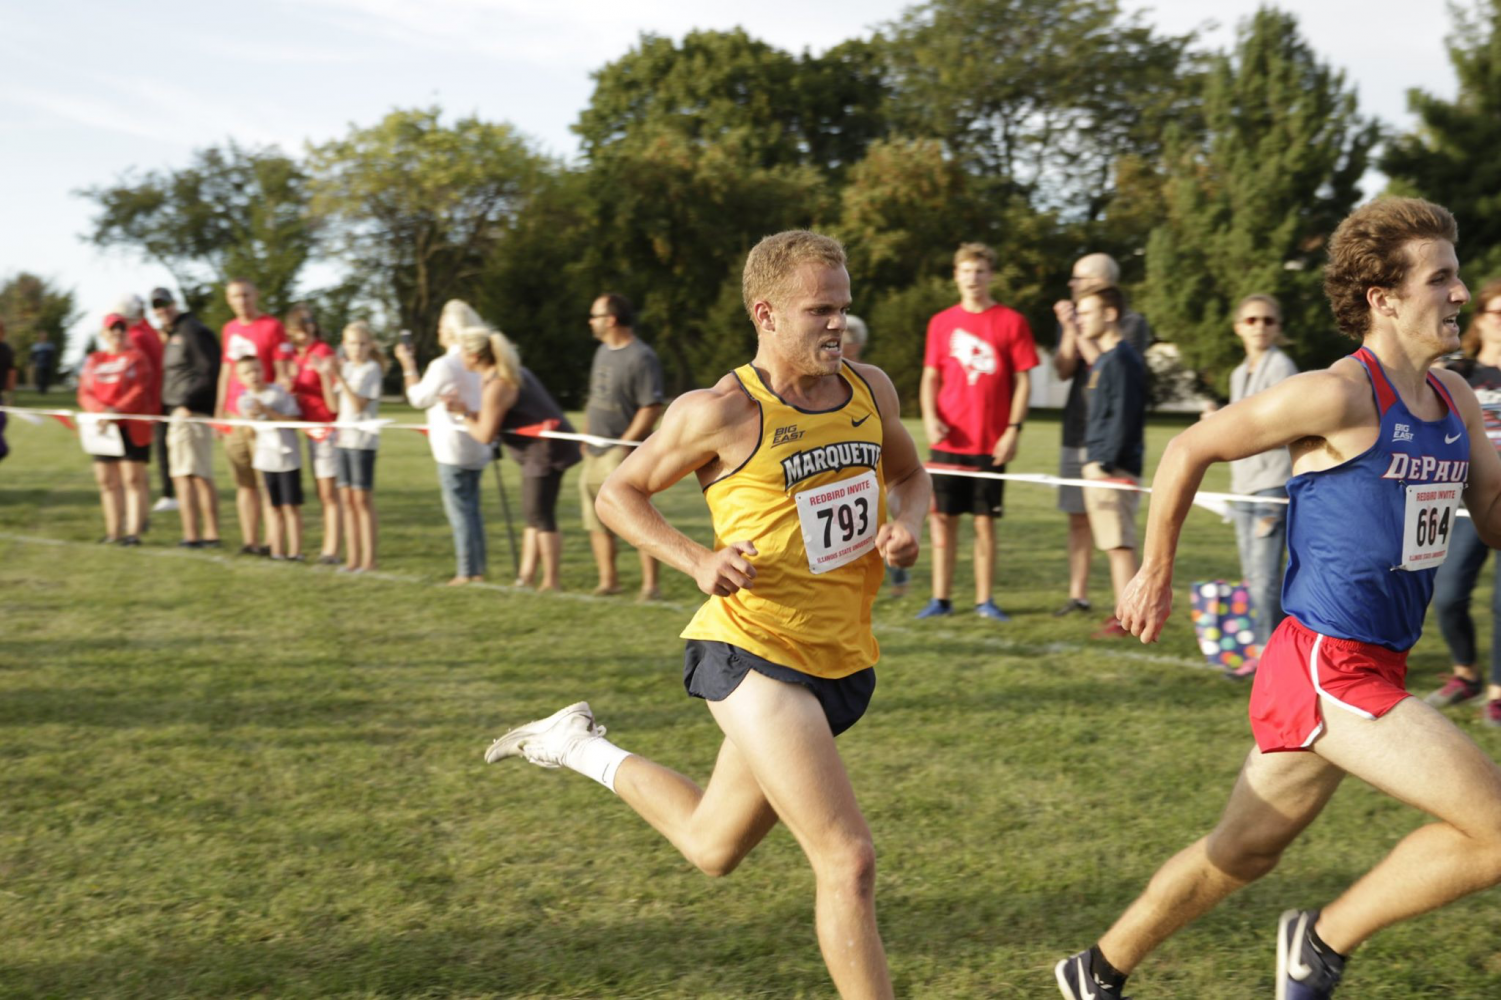 Greg Van Hollen is freshman from Barrington Illinois. He finished 51st at the Illinois State Invite Sept. 13. This past weekend he finished fourth at the Bradley